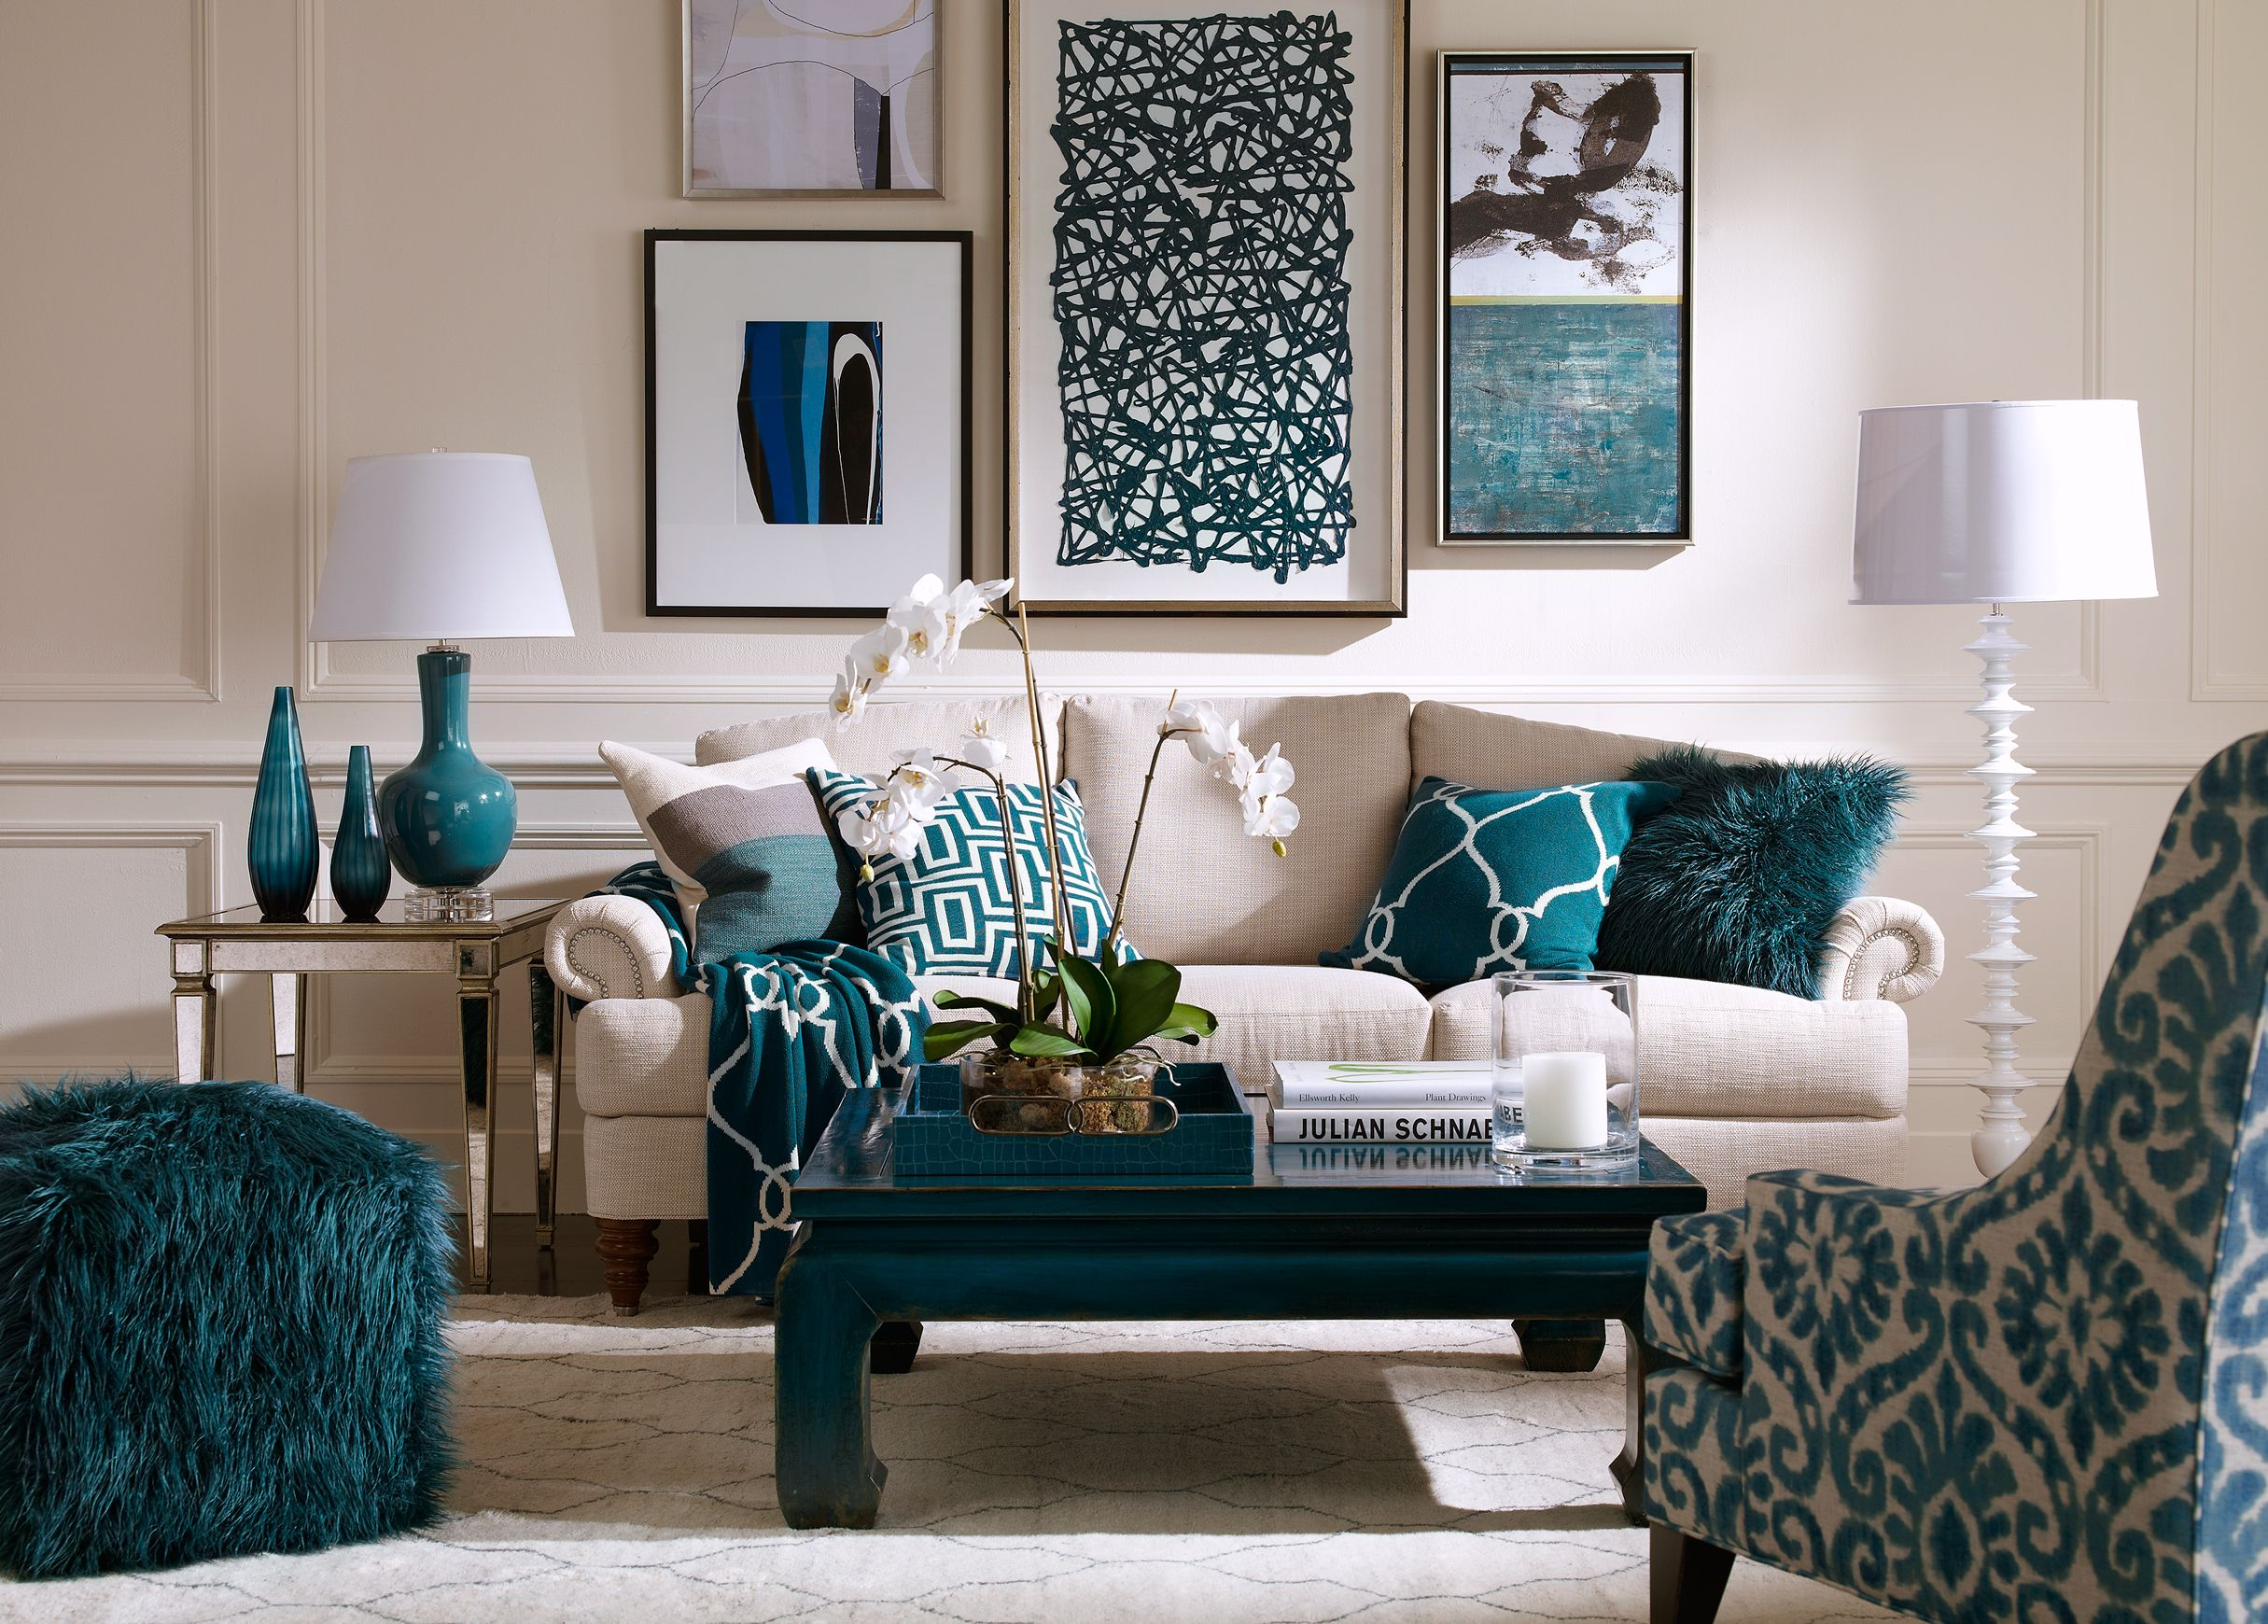 15 Best Images About Turquoise Room Decorations 25  Teal accents ideas on Pinterest living room color